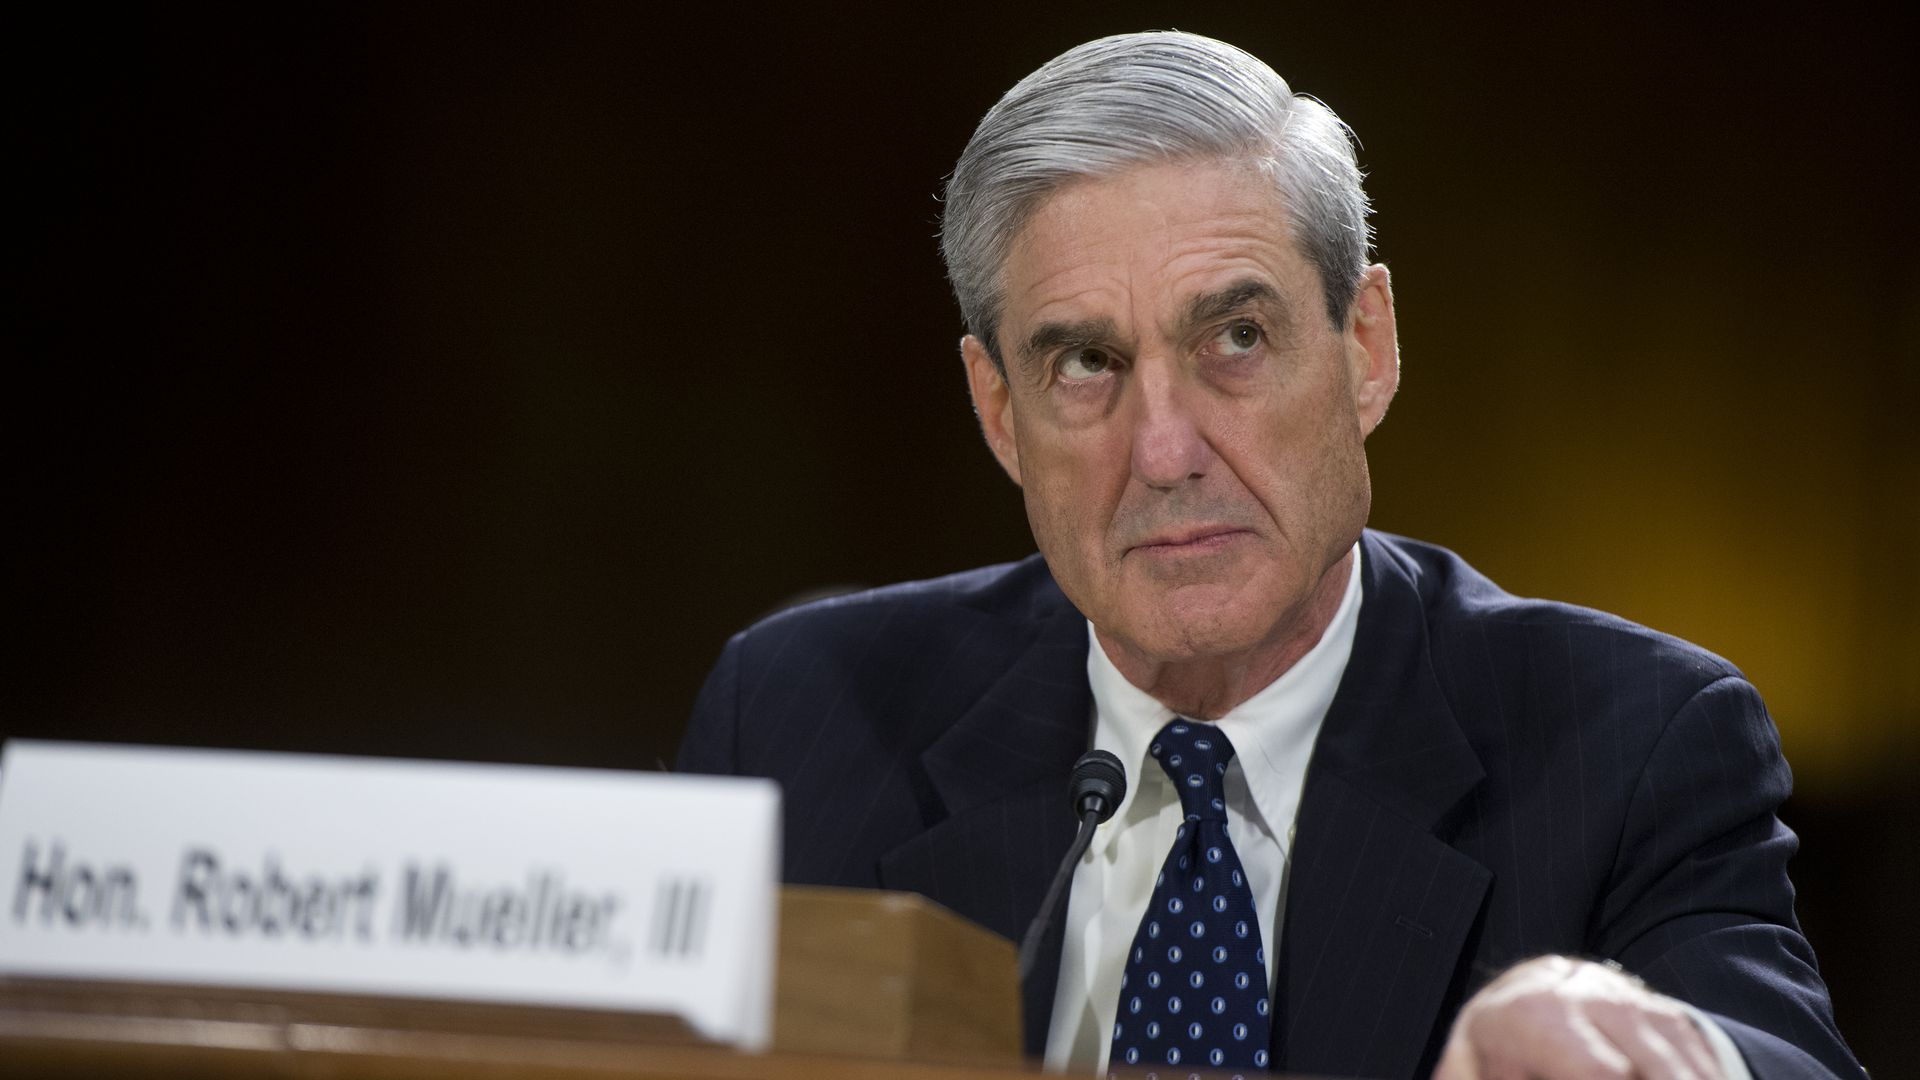 Special Counsel Robert Mueller's Russia investigation looks close to wrapping up.